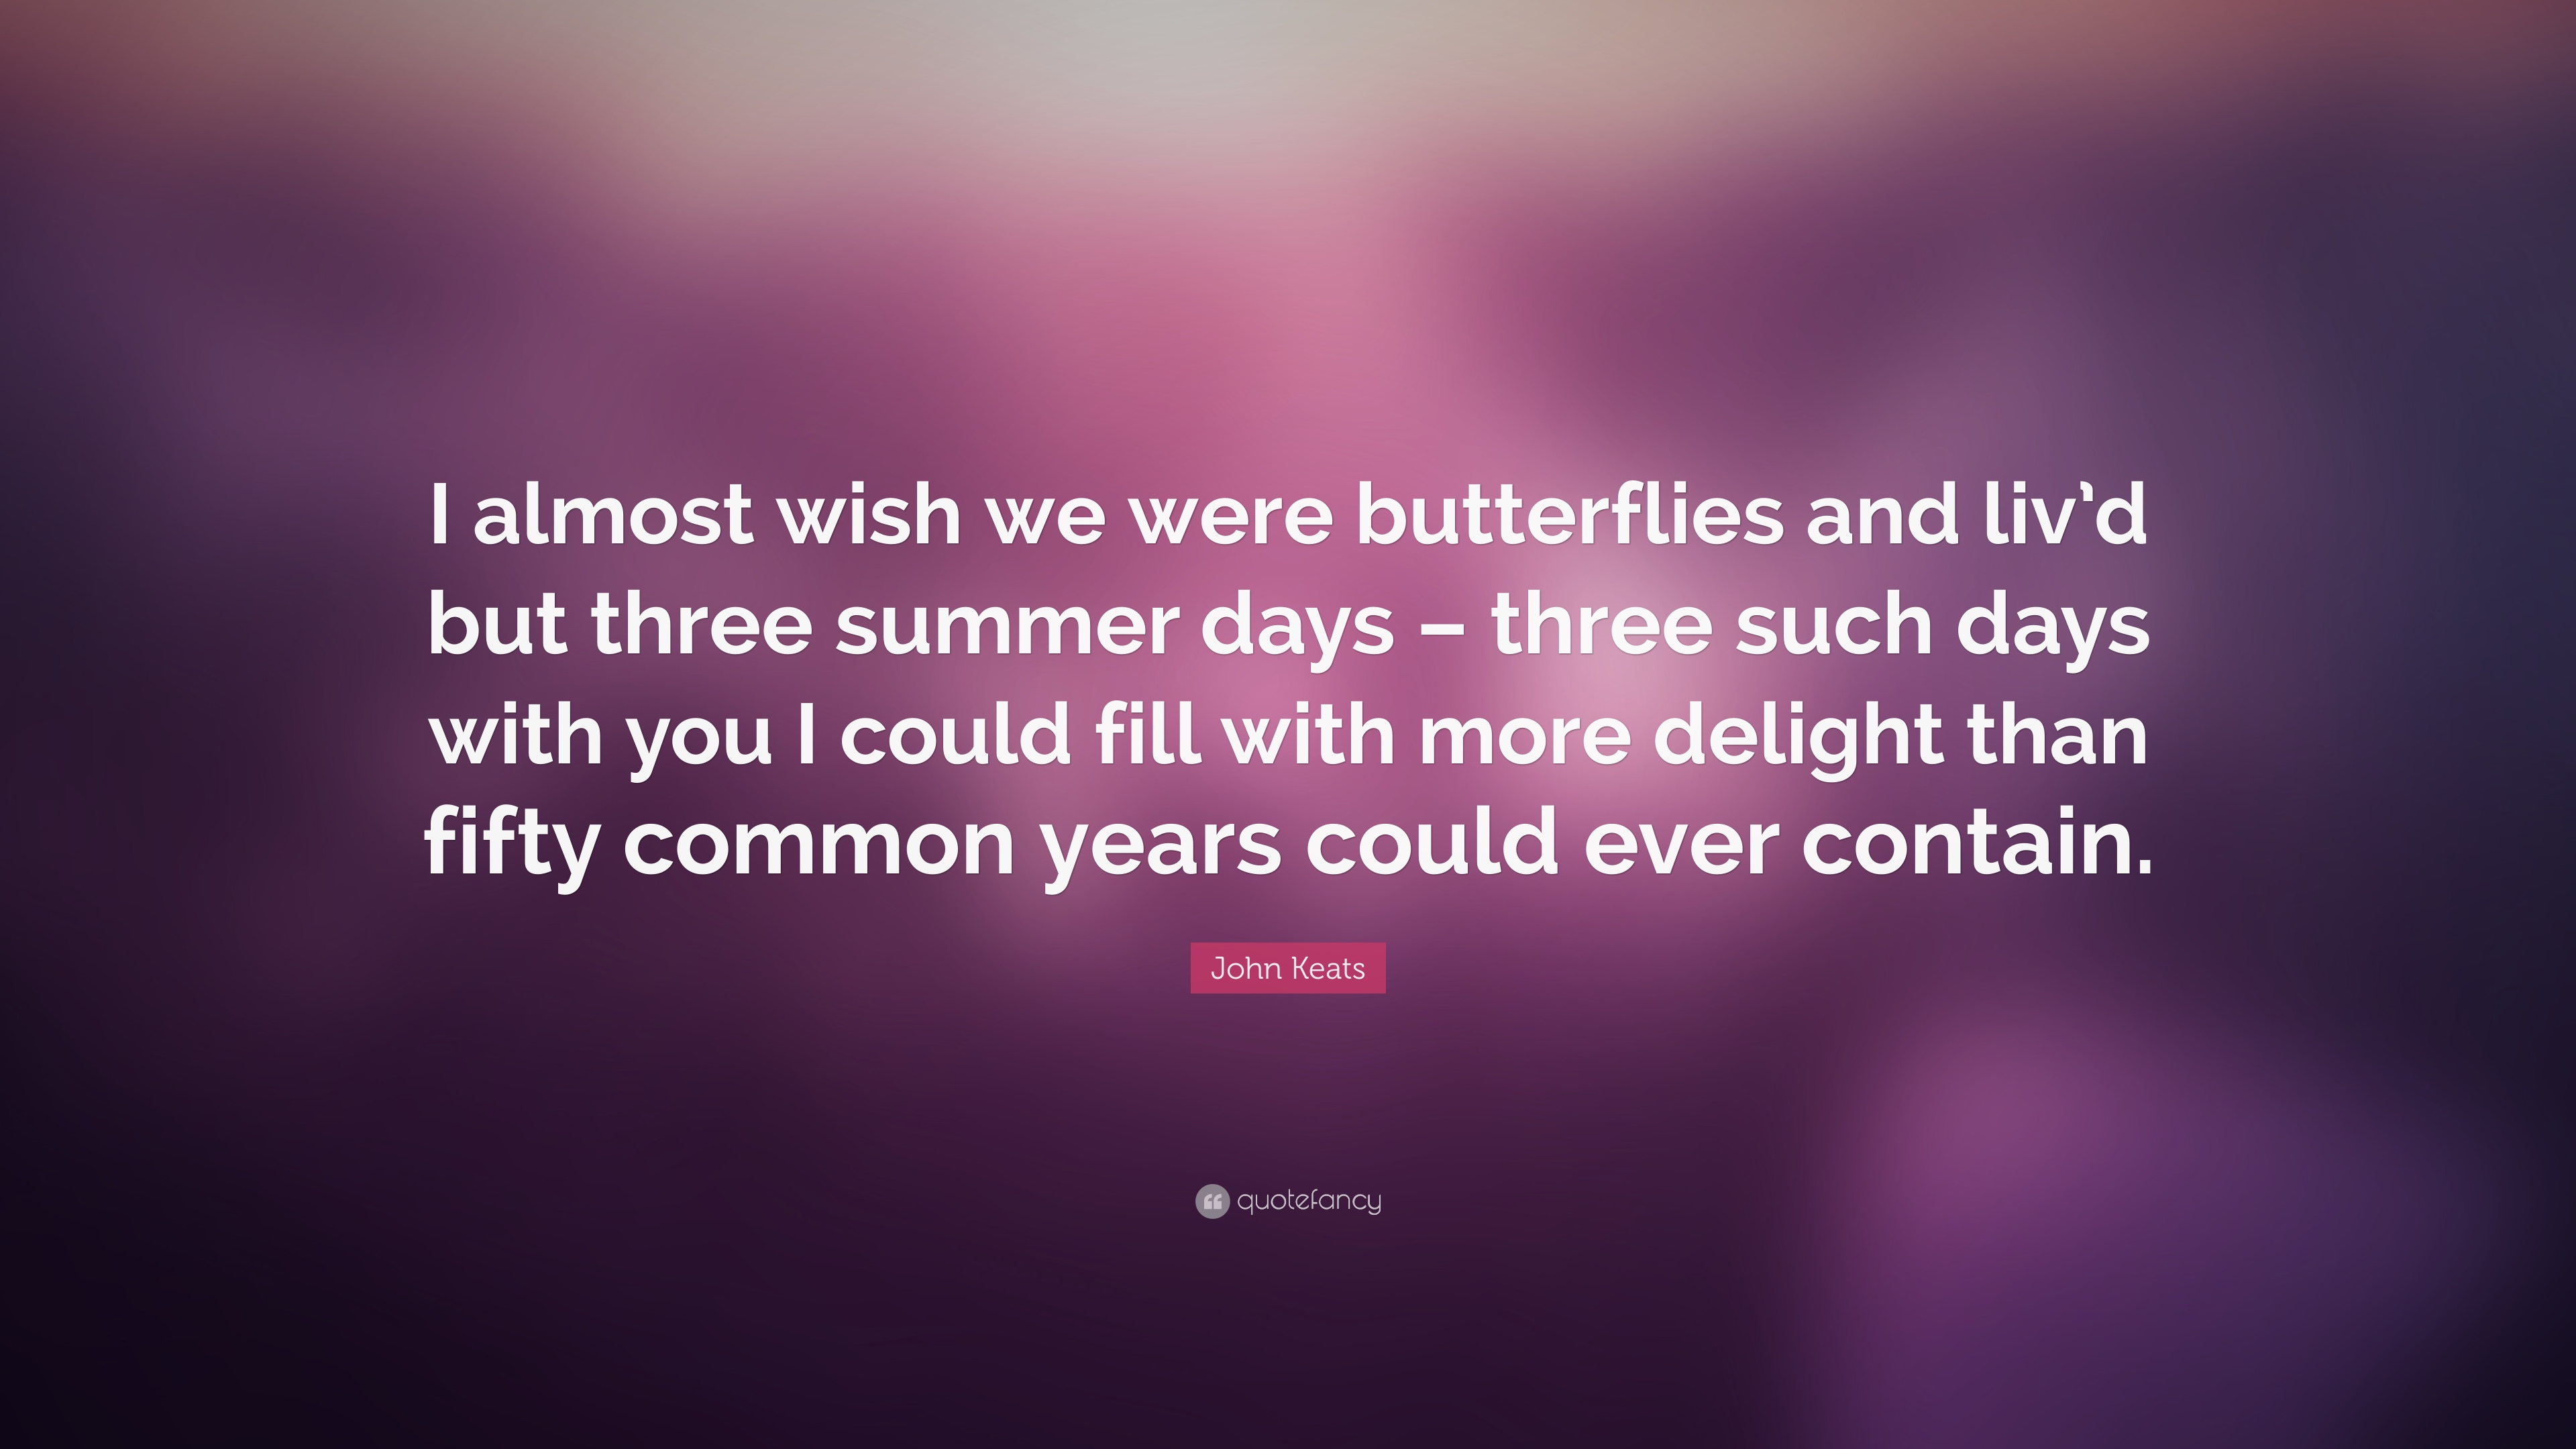 John Keats Quote: U201cI Almost Wish We Were Butterflies And Livu0027d But